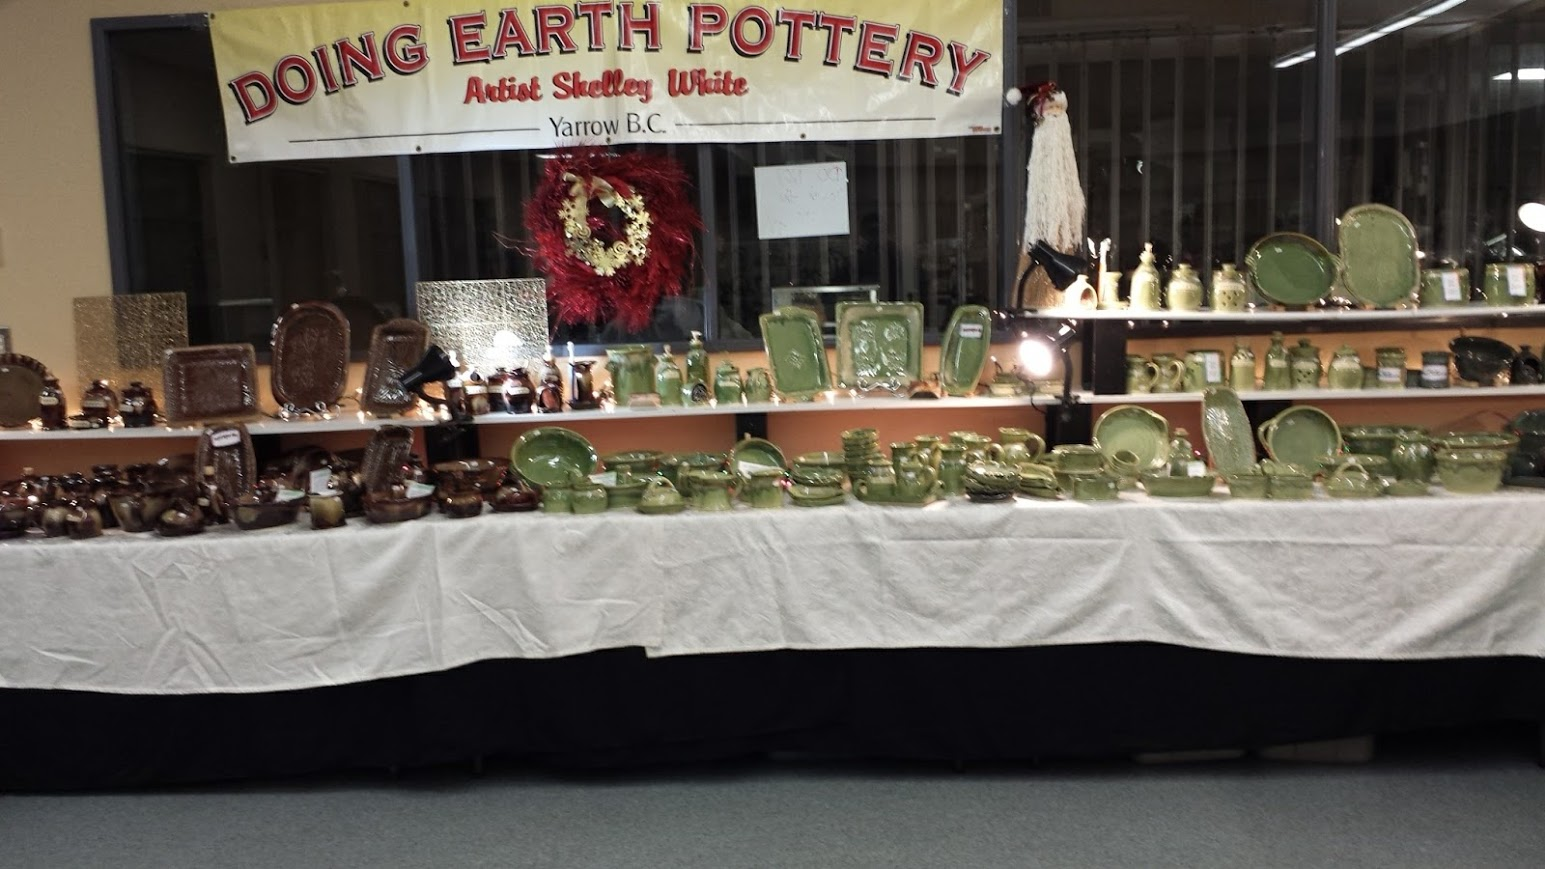 Doing Earth Pottery Chilliwack Christmas Art Market